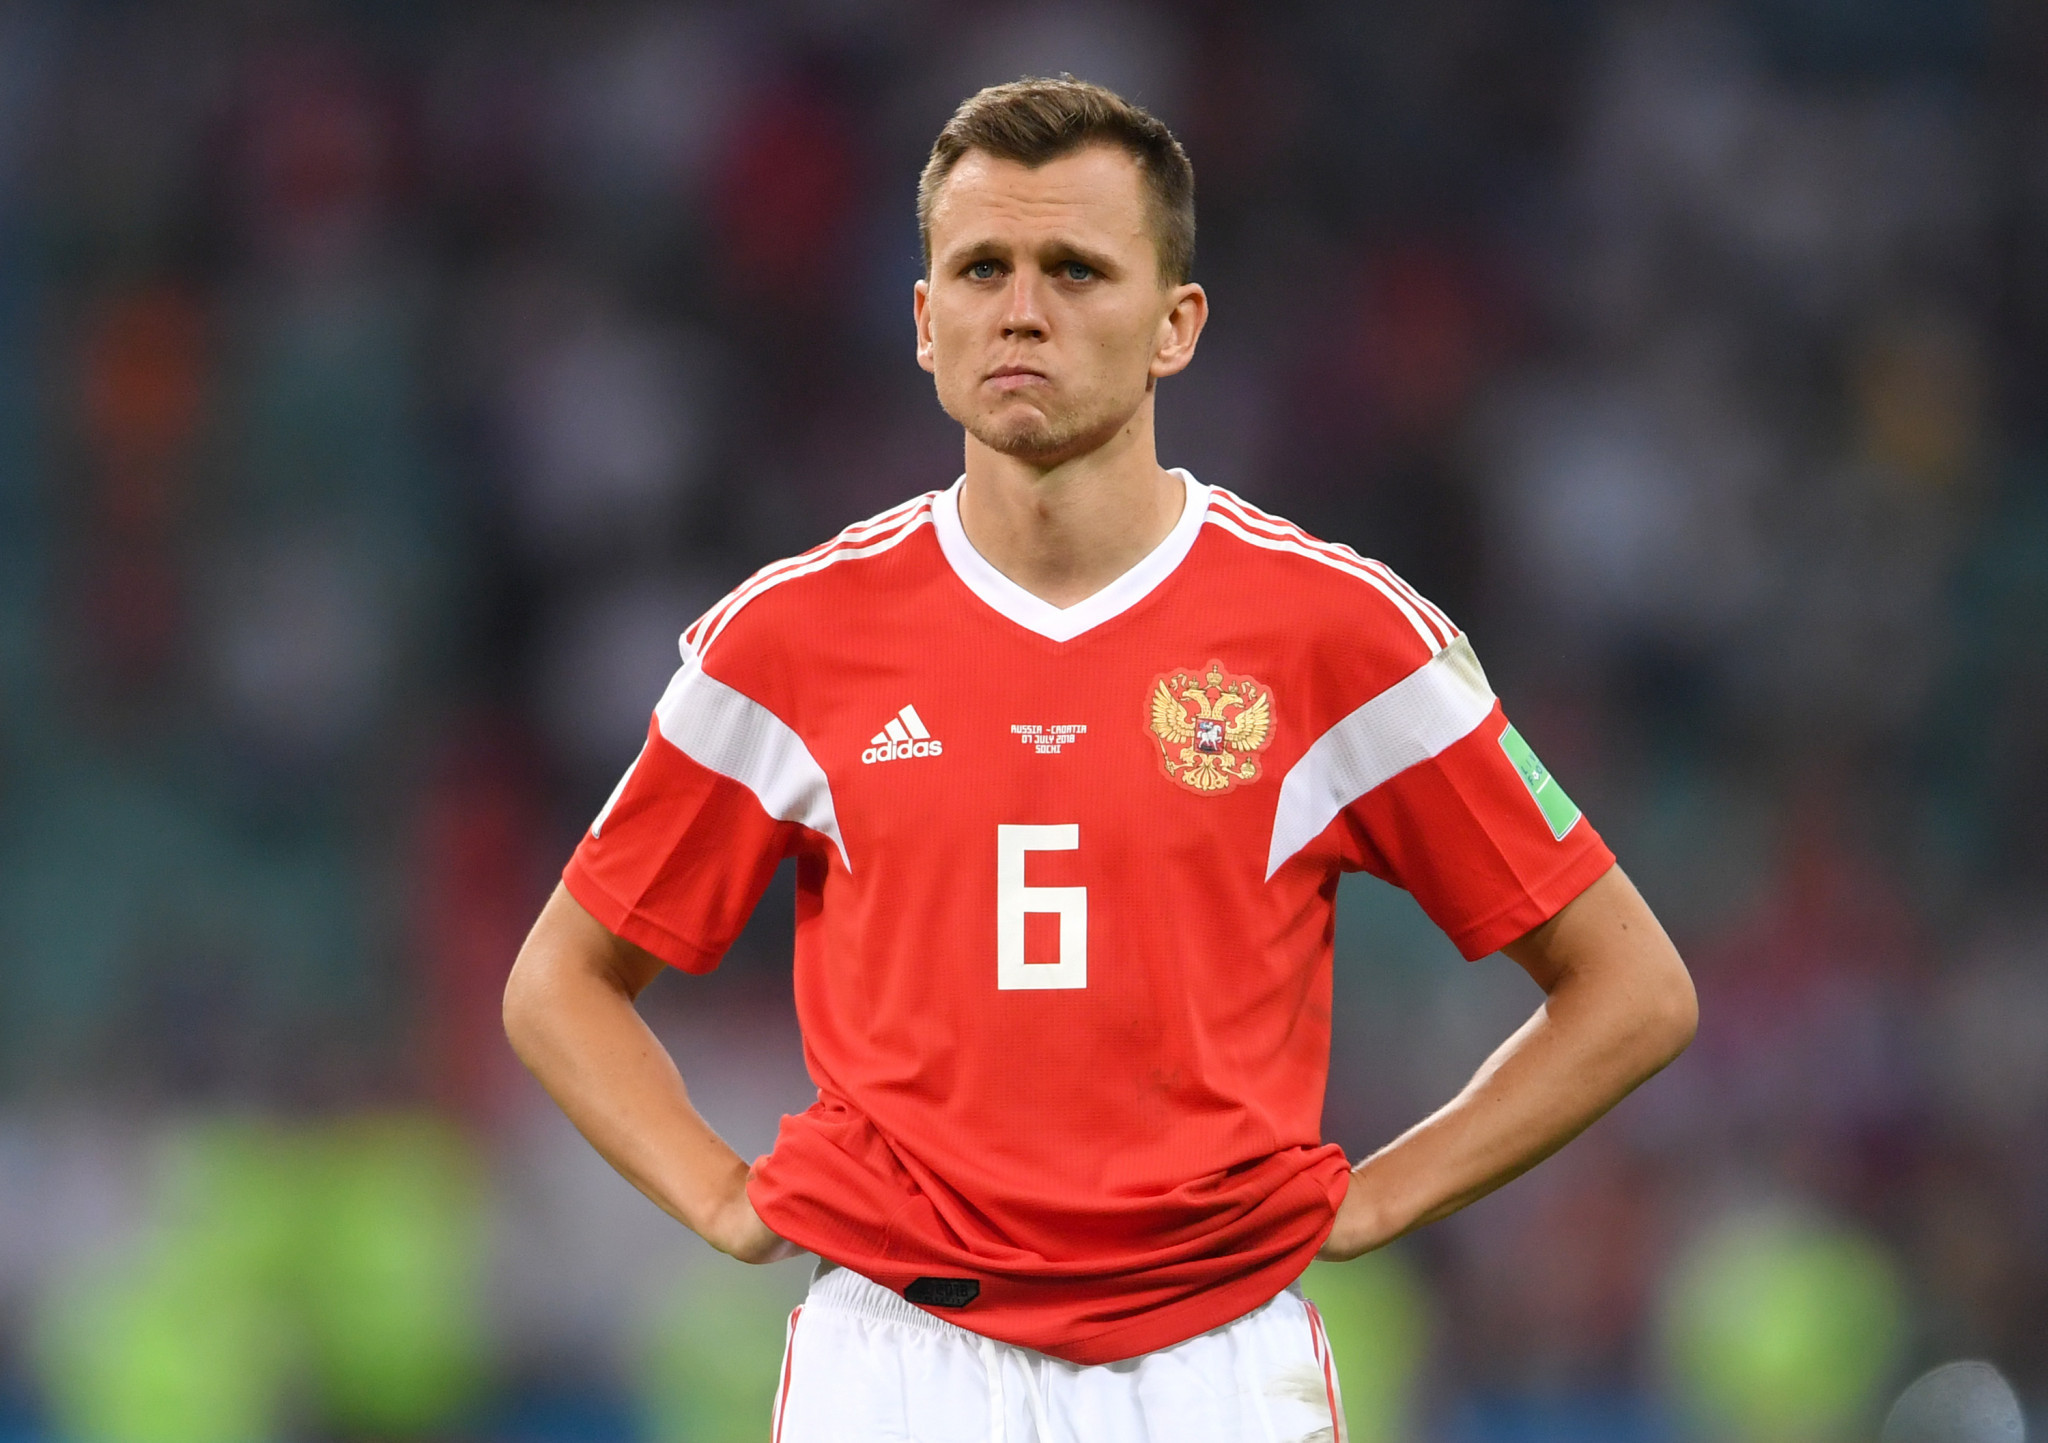 Cheryshev cleared of wrongdoing as Spanish Anti-Doping Agency close injection investigation